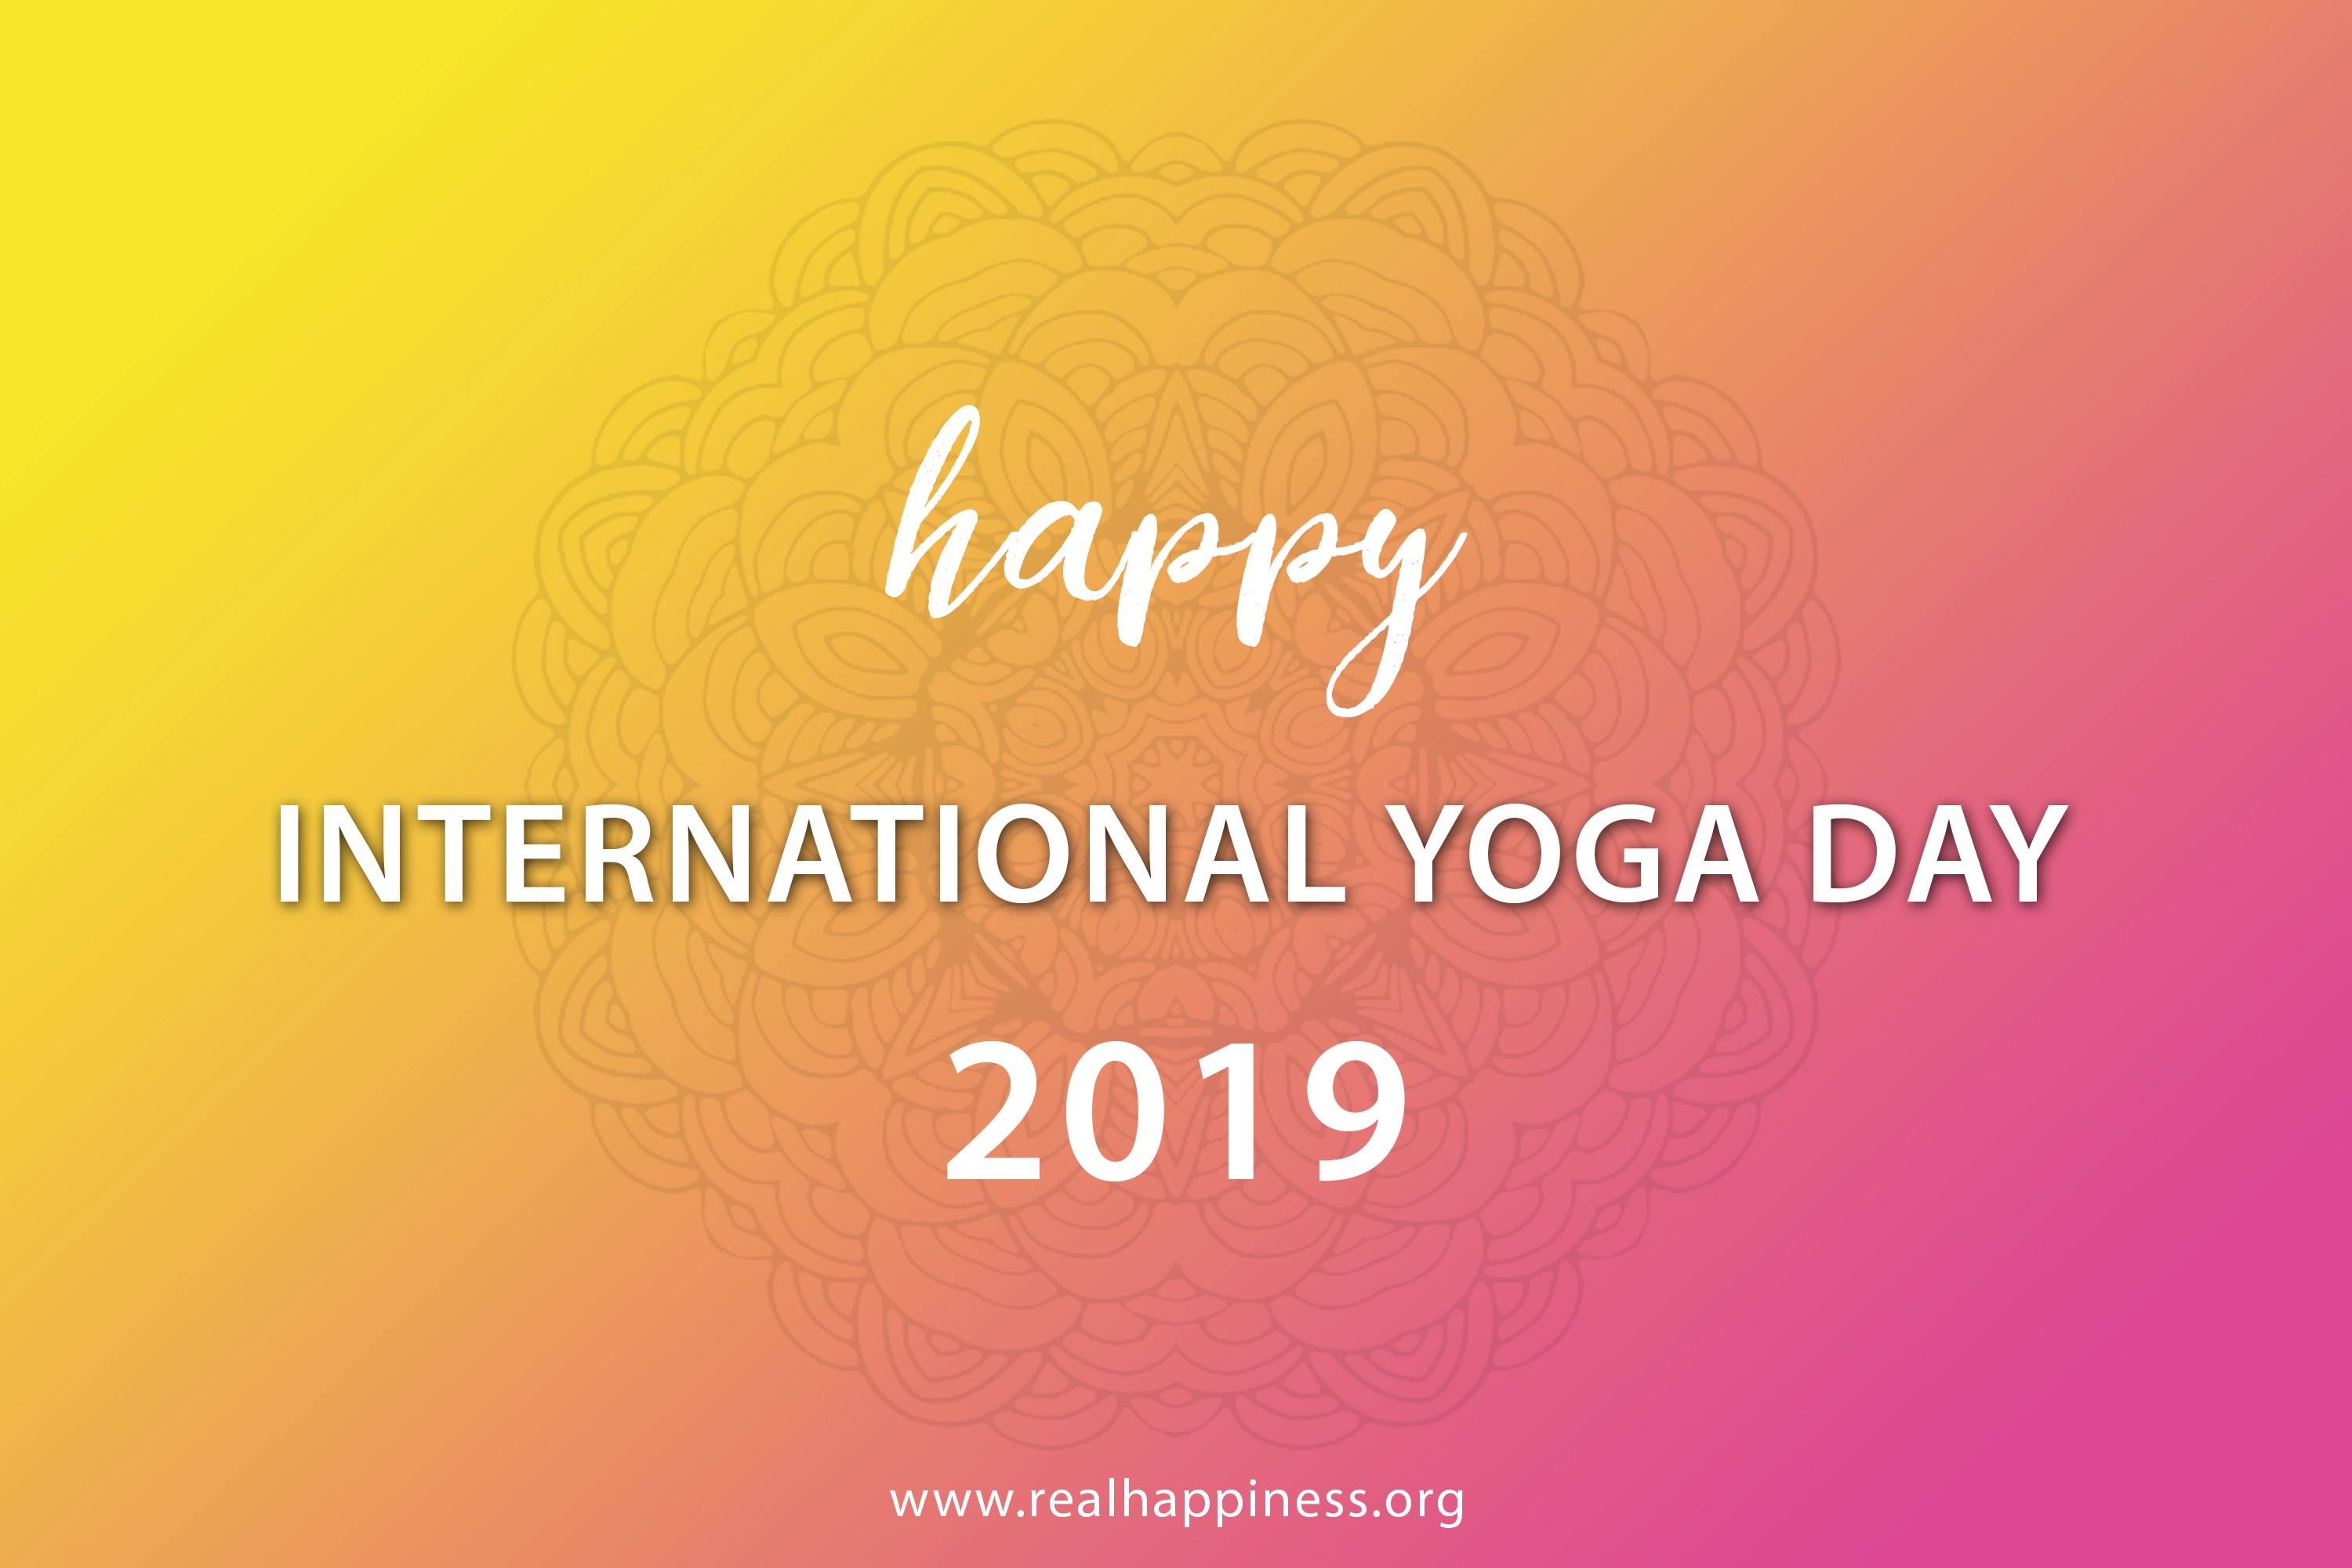 Meditation In India Today On Happy International Yoga Day By Real Happiness Medium